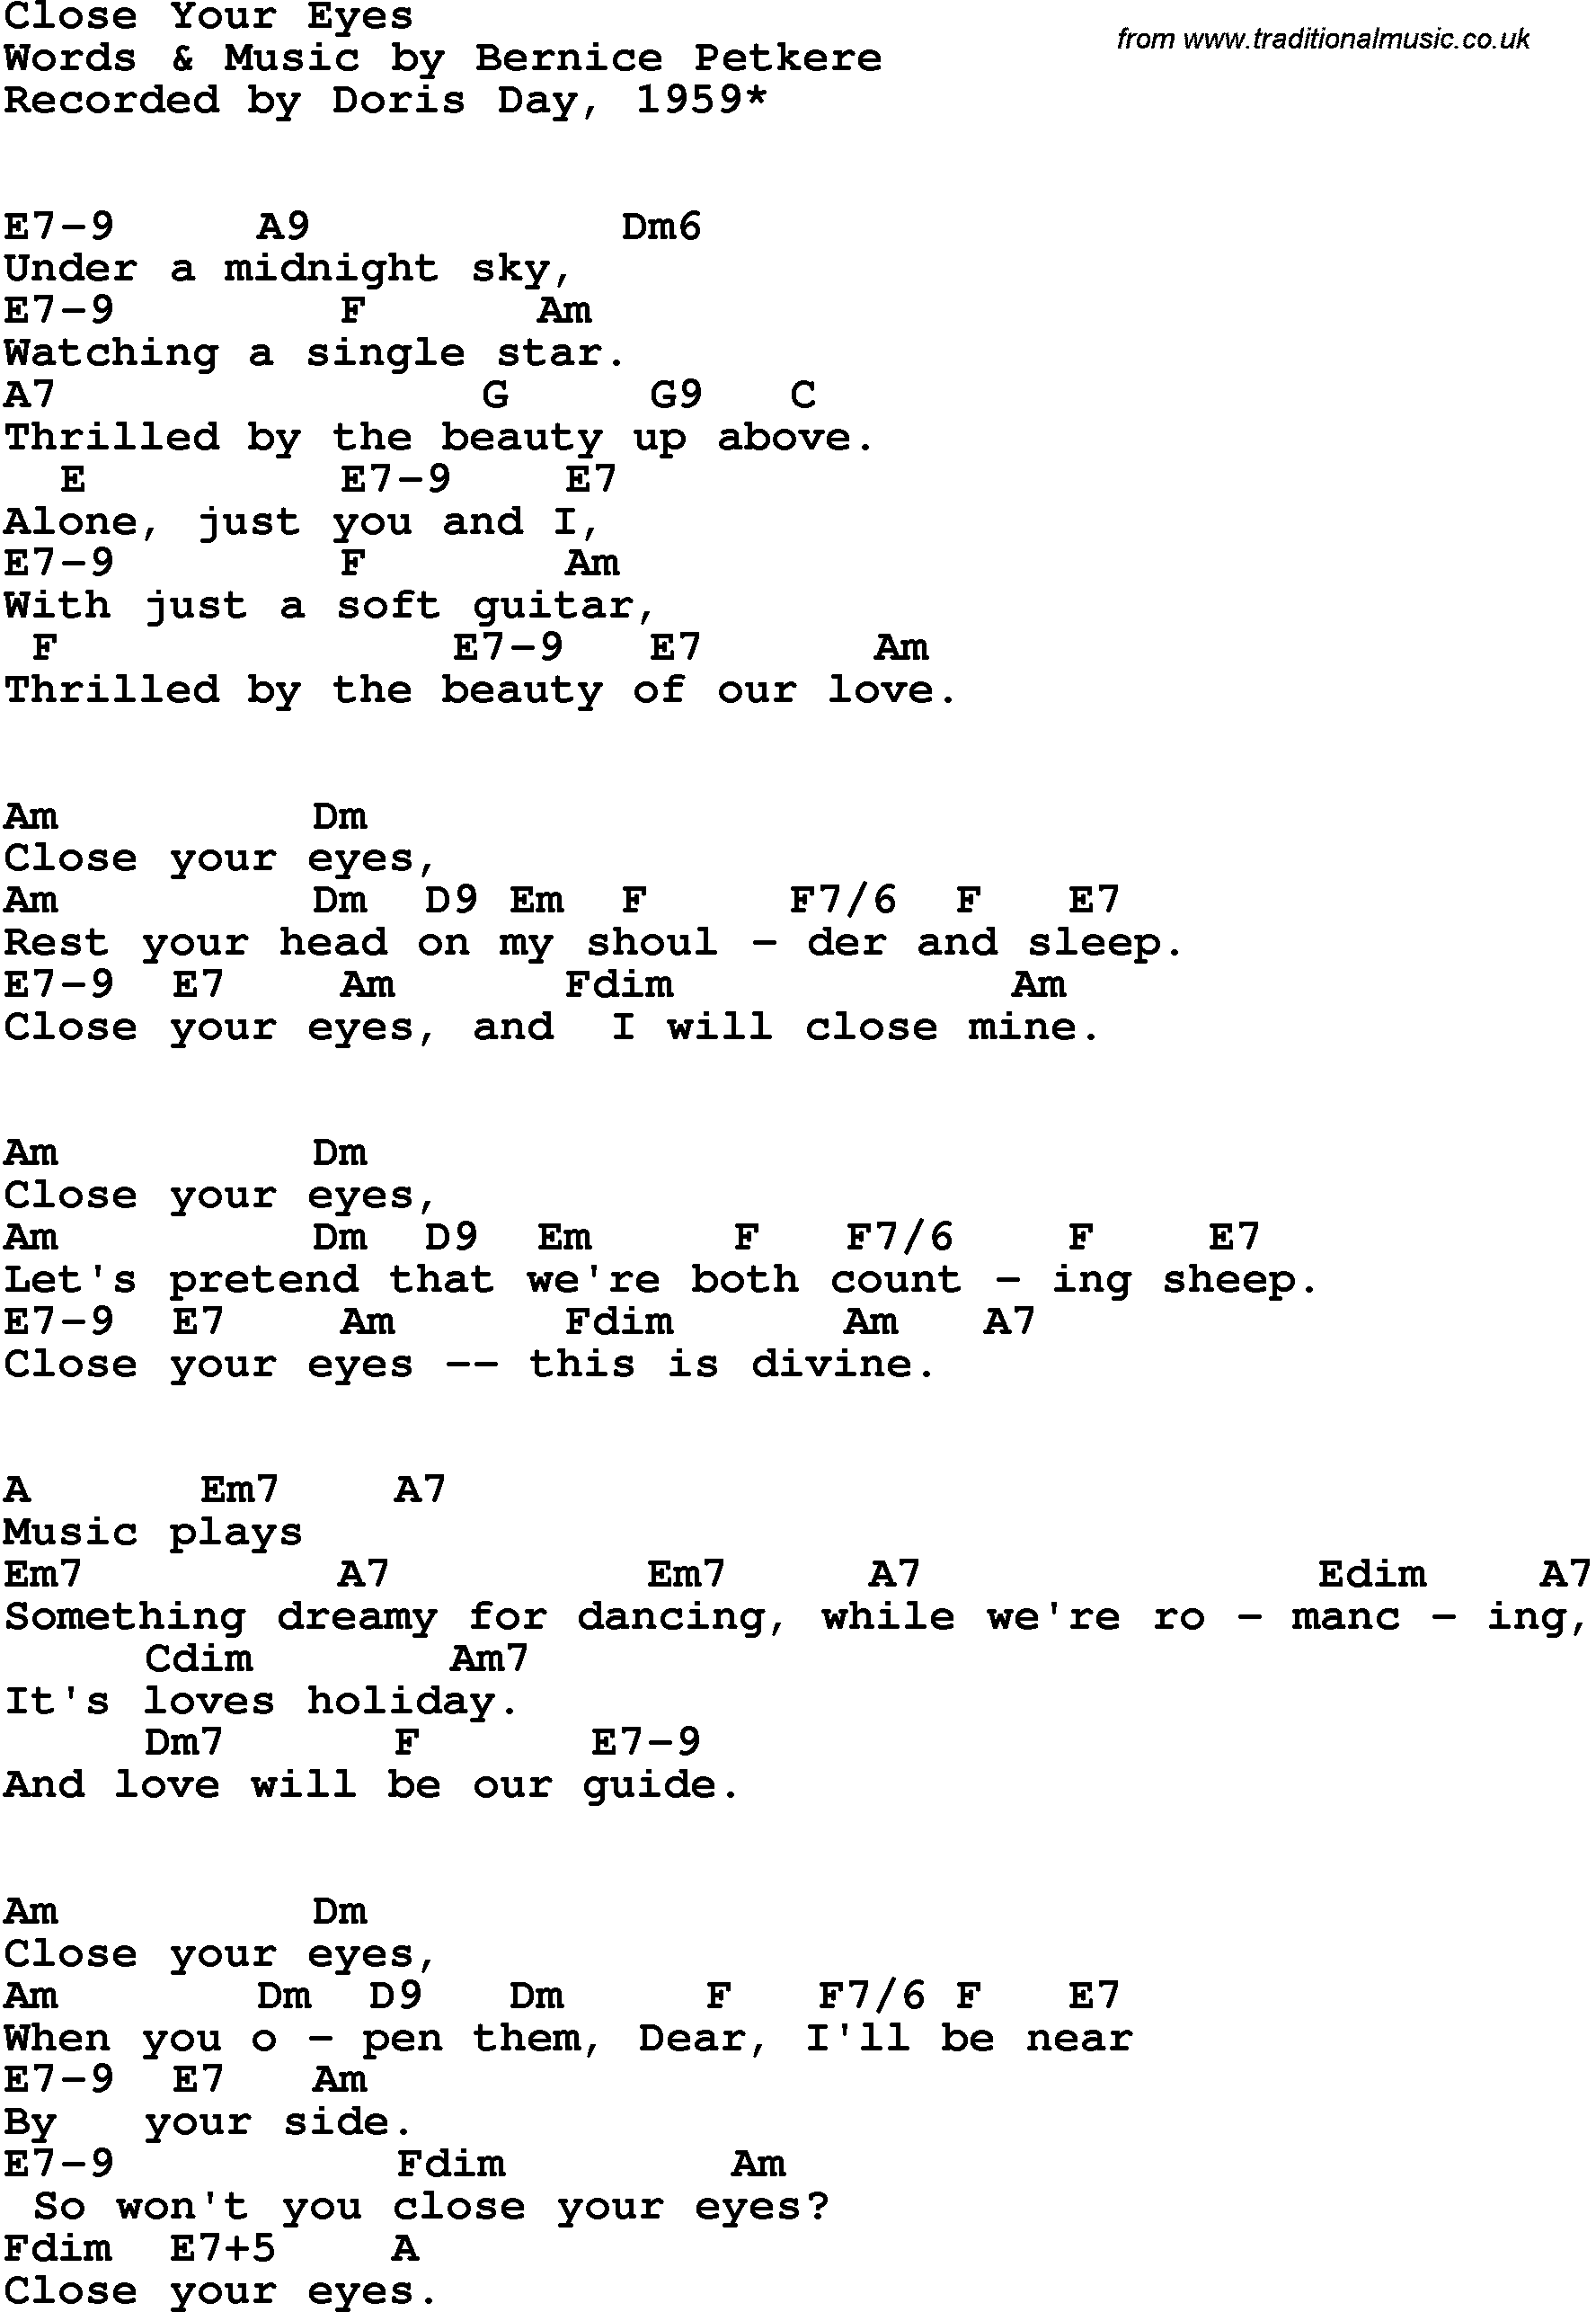 Song lyrics with guitar chords for Close Your Eyes - Doris Day, 1959